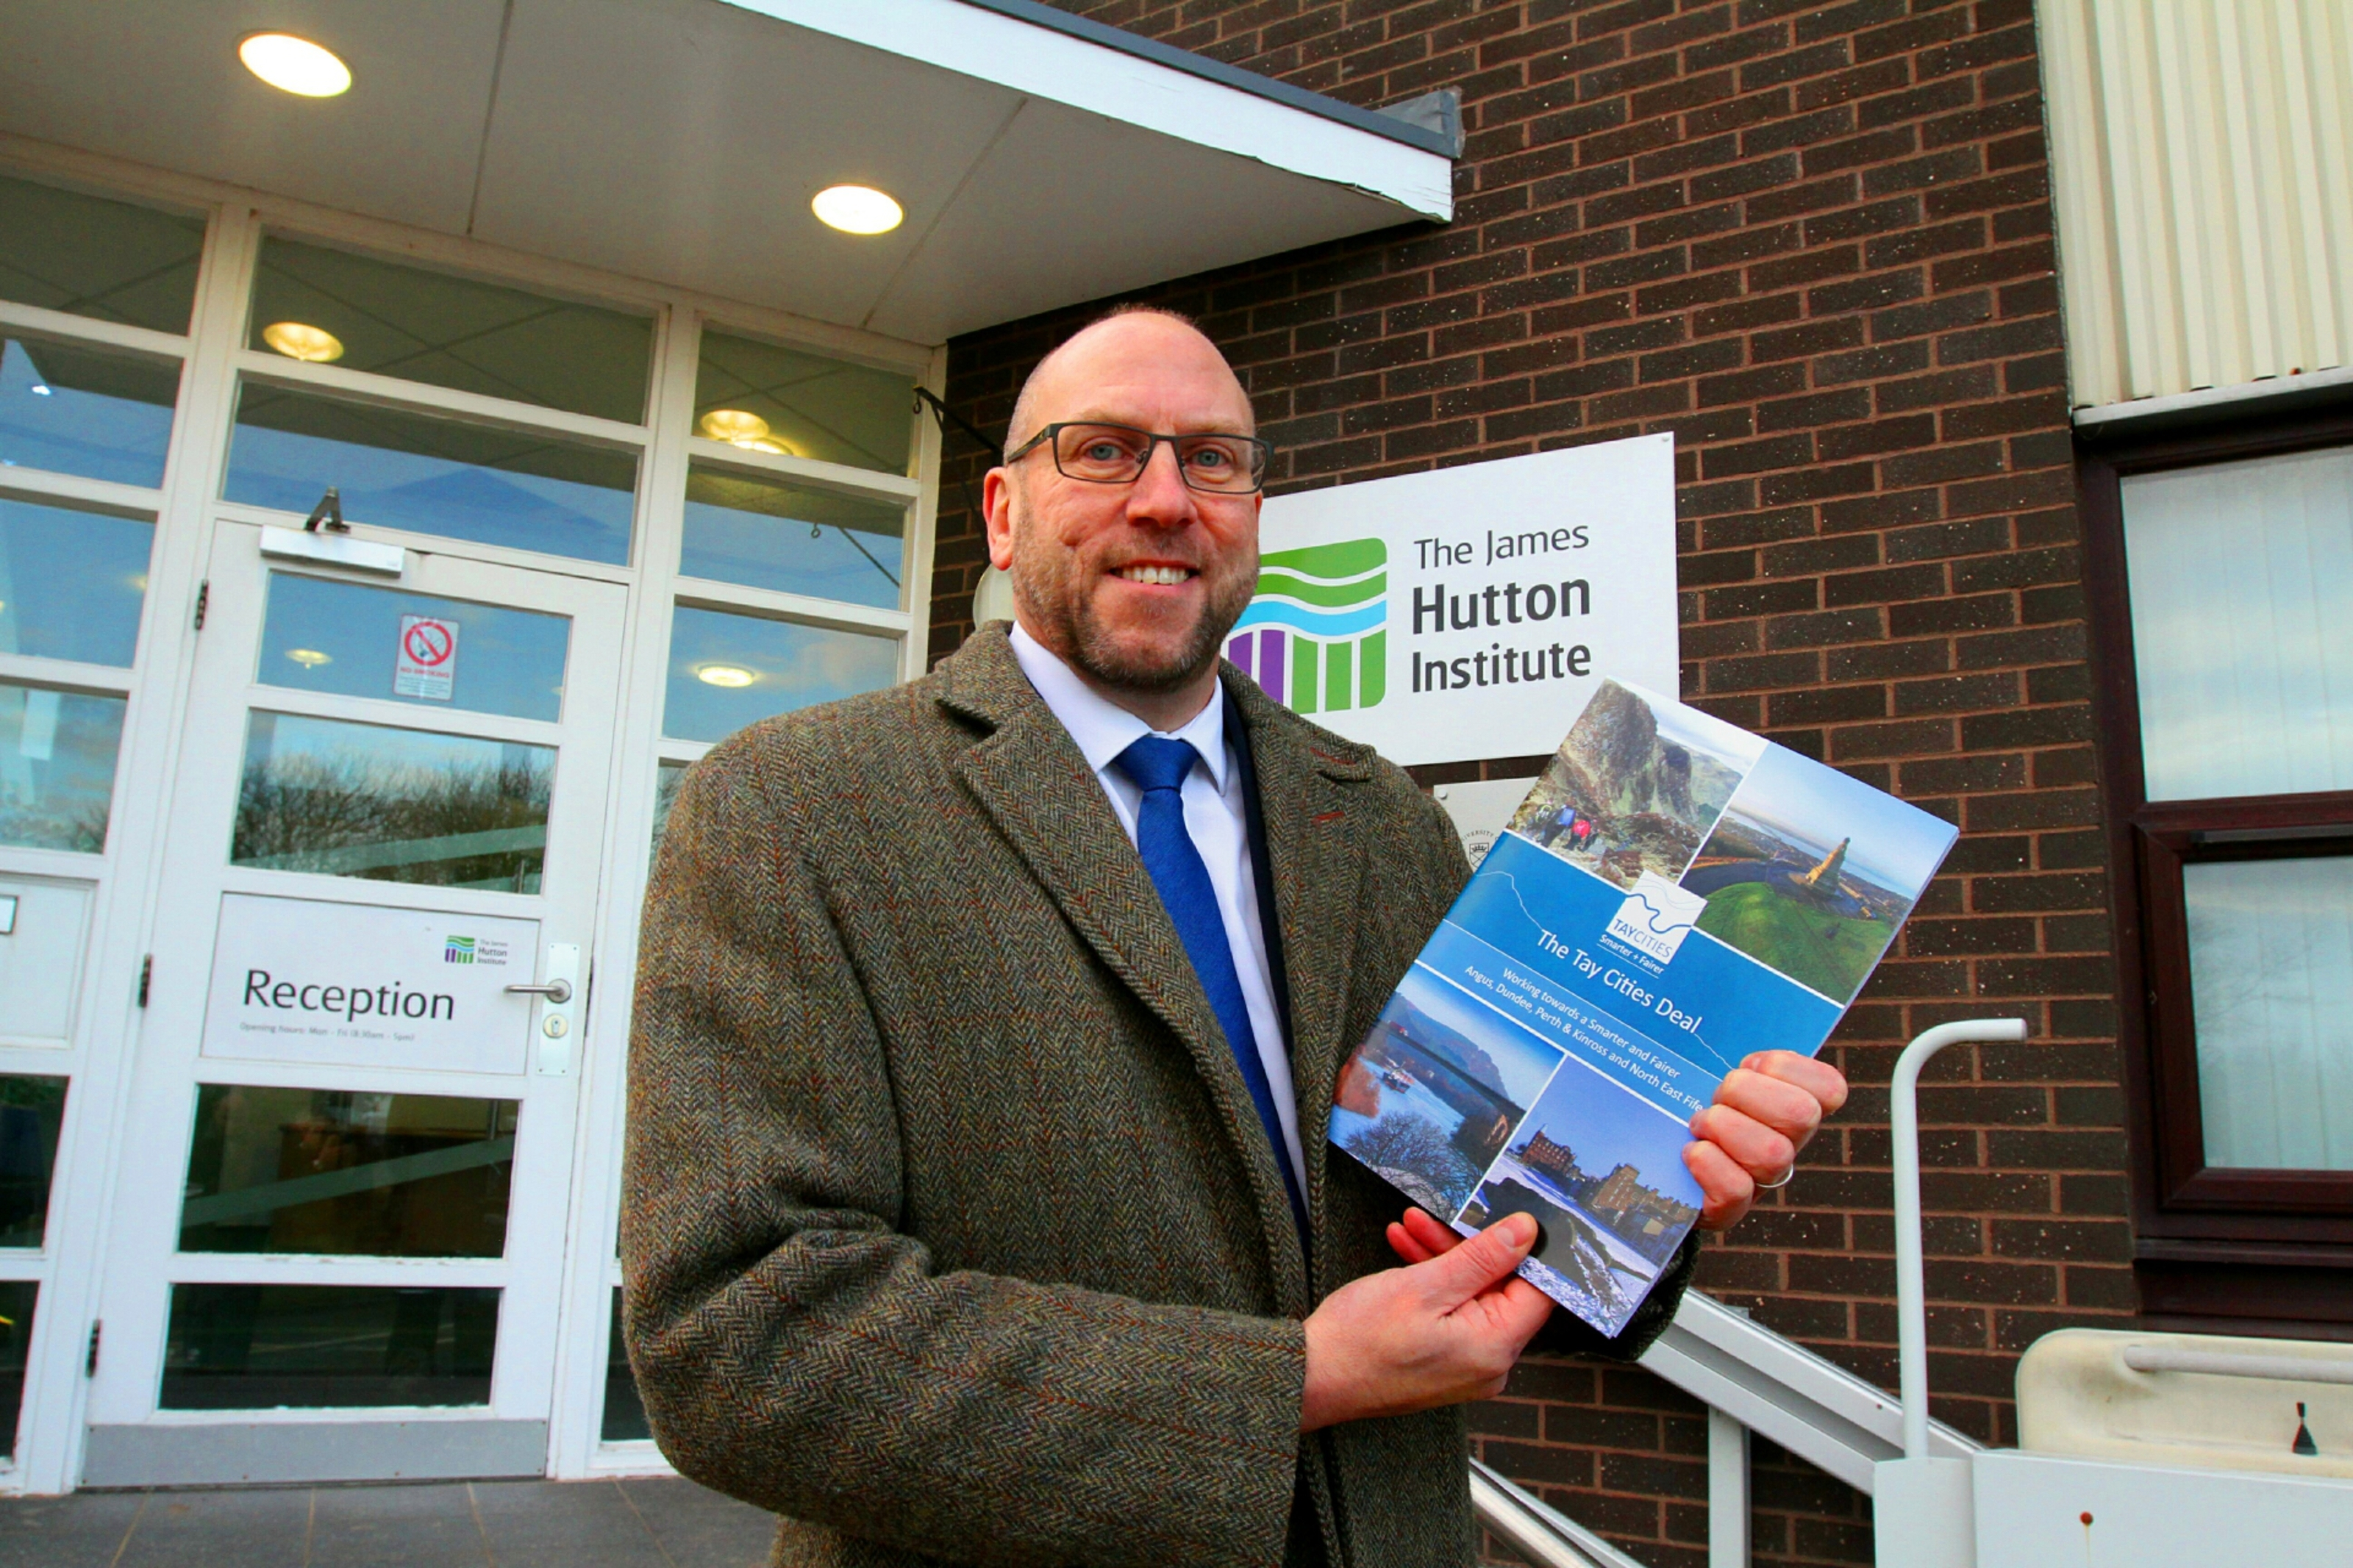 David Littlejohn, head of the Tay Cities Deal at the James Hutton Institute where the submission document was launched.